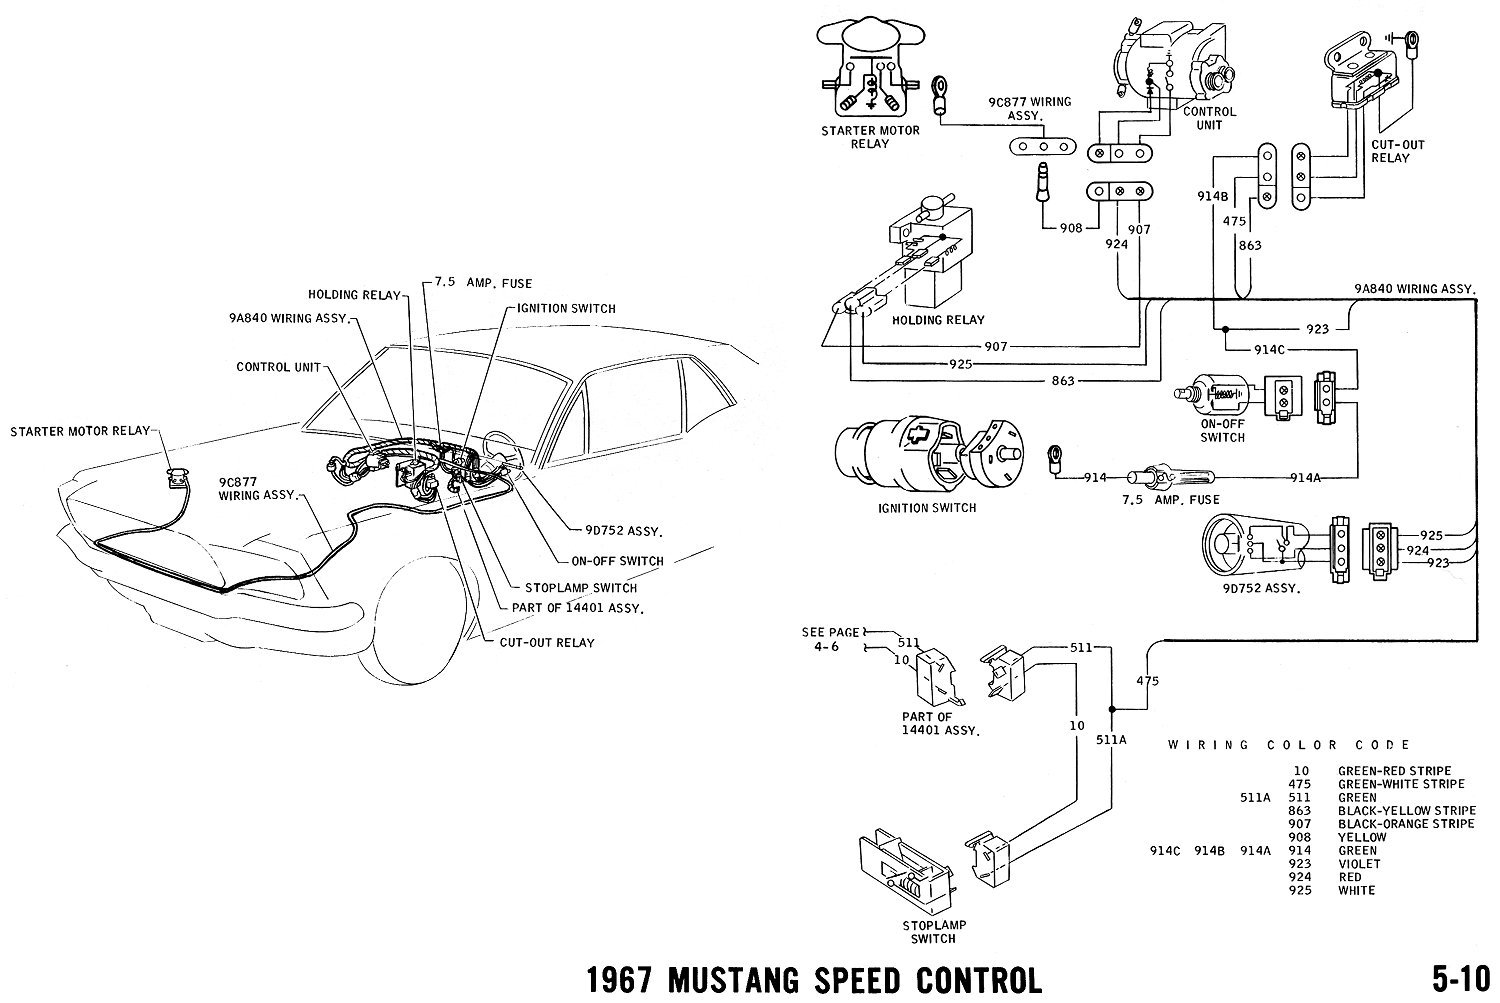 67speed 1967 mustang wiring and vacuum diagrams average joe restoration 1965 mustang alternator wiring diagram at aneh.co